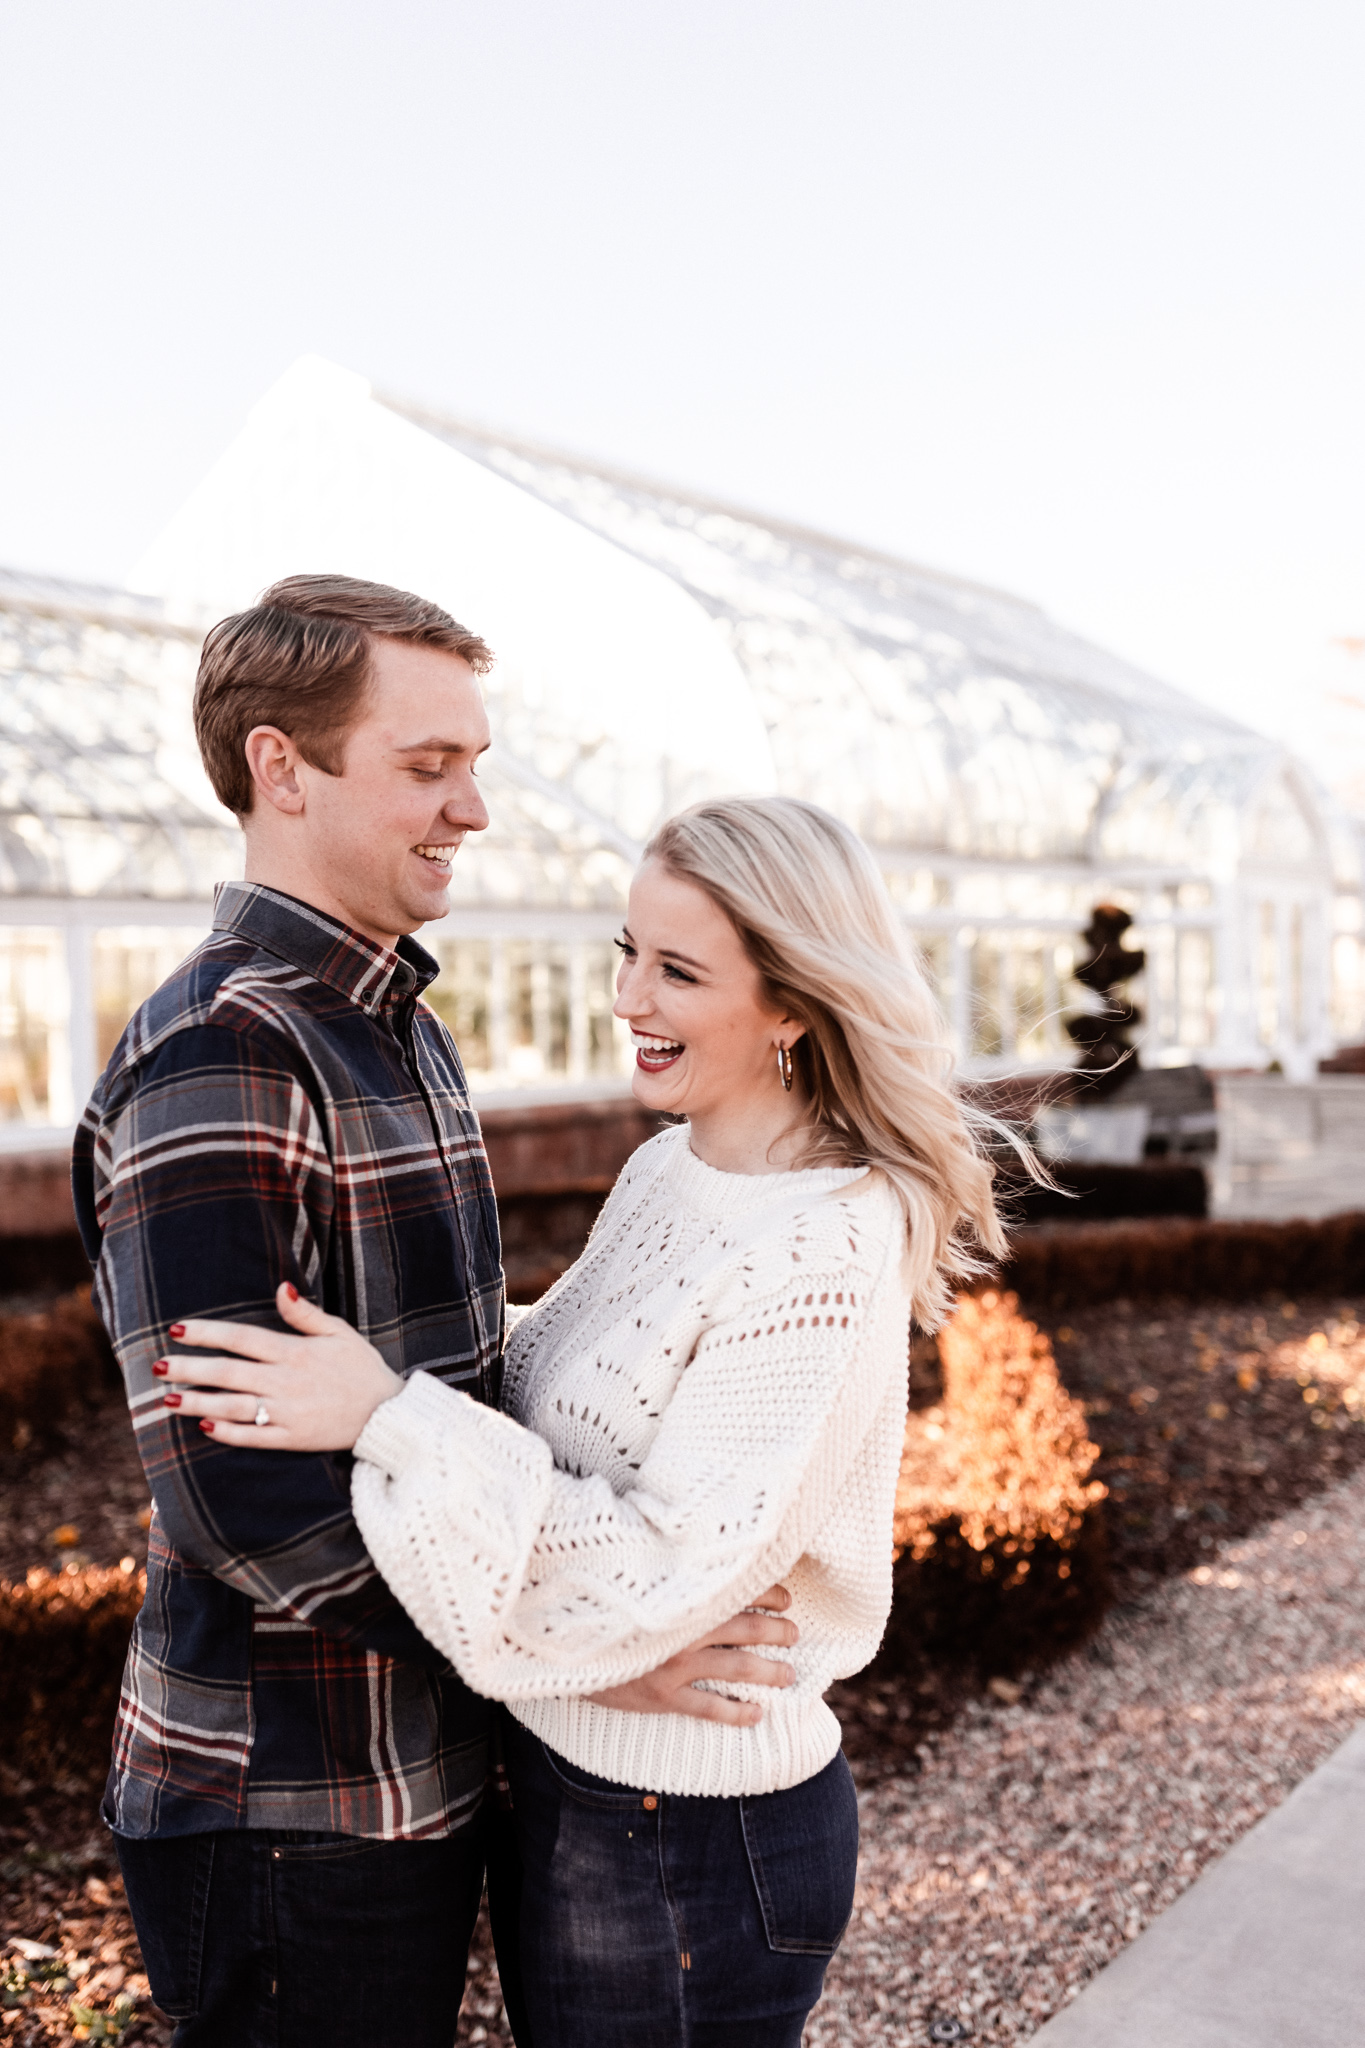 Foster + Alexa | Spring Garden Engagements | Oklahoma Wedding Photographer-8.jpg